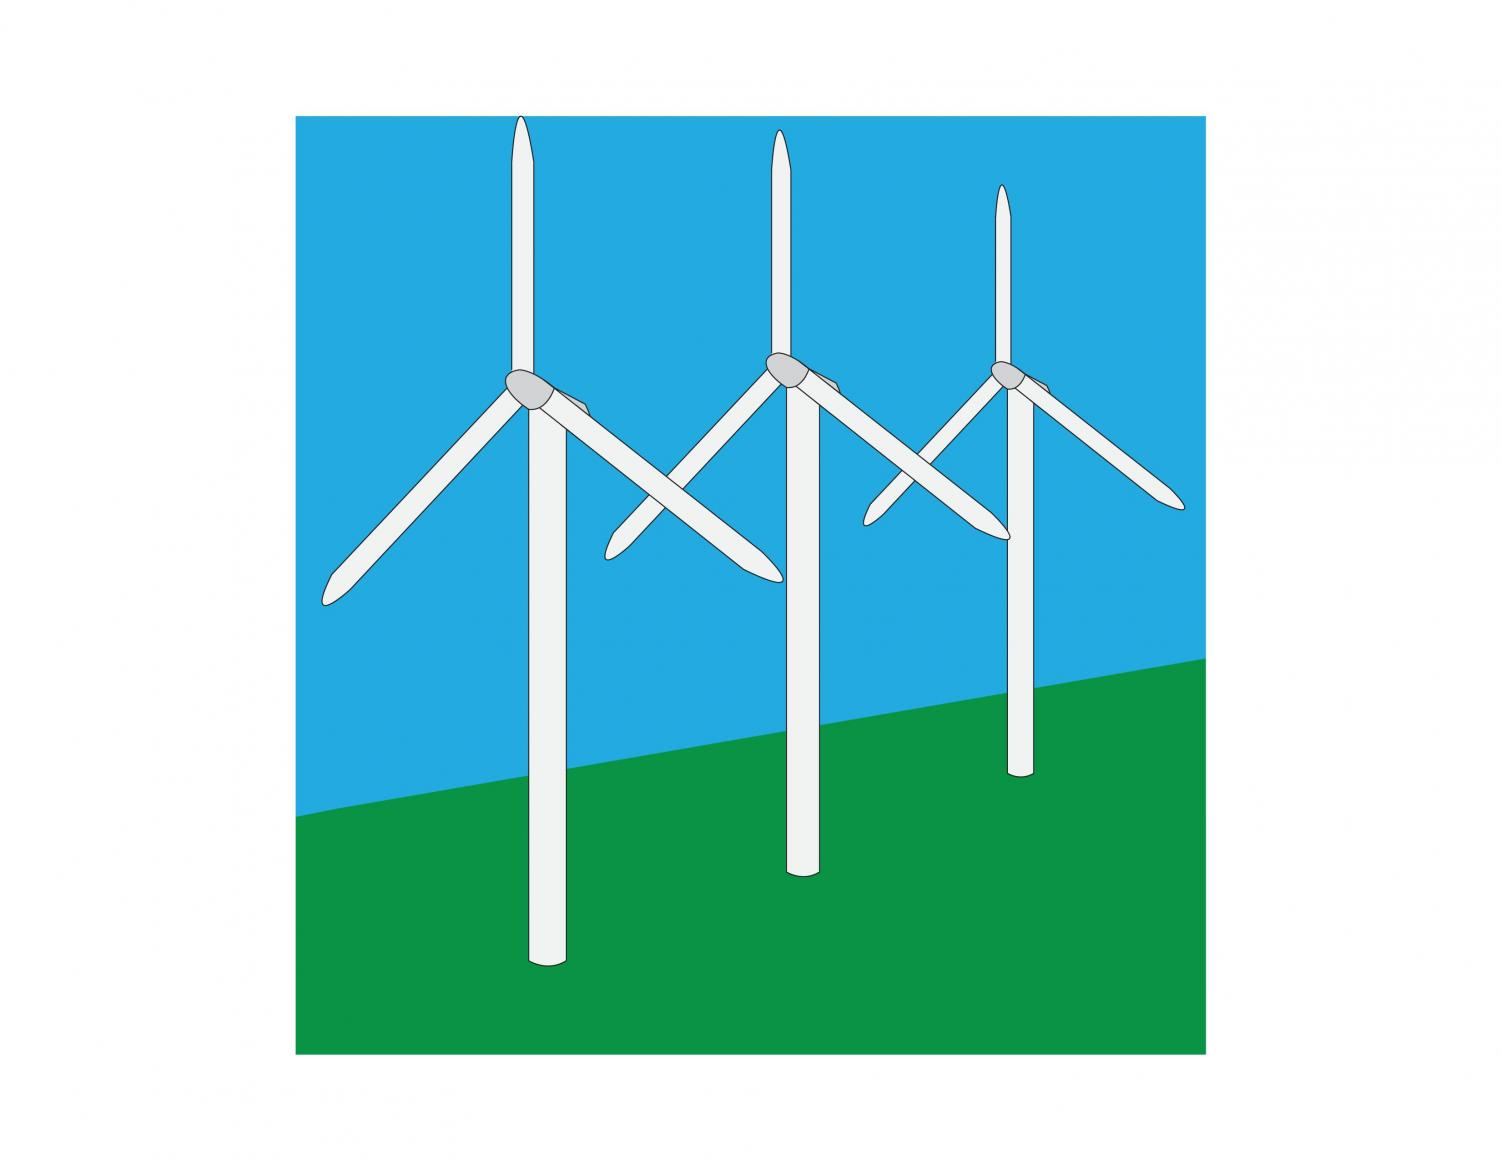 Wind turbines are a source of clean and renewable energy, along with solar panels.